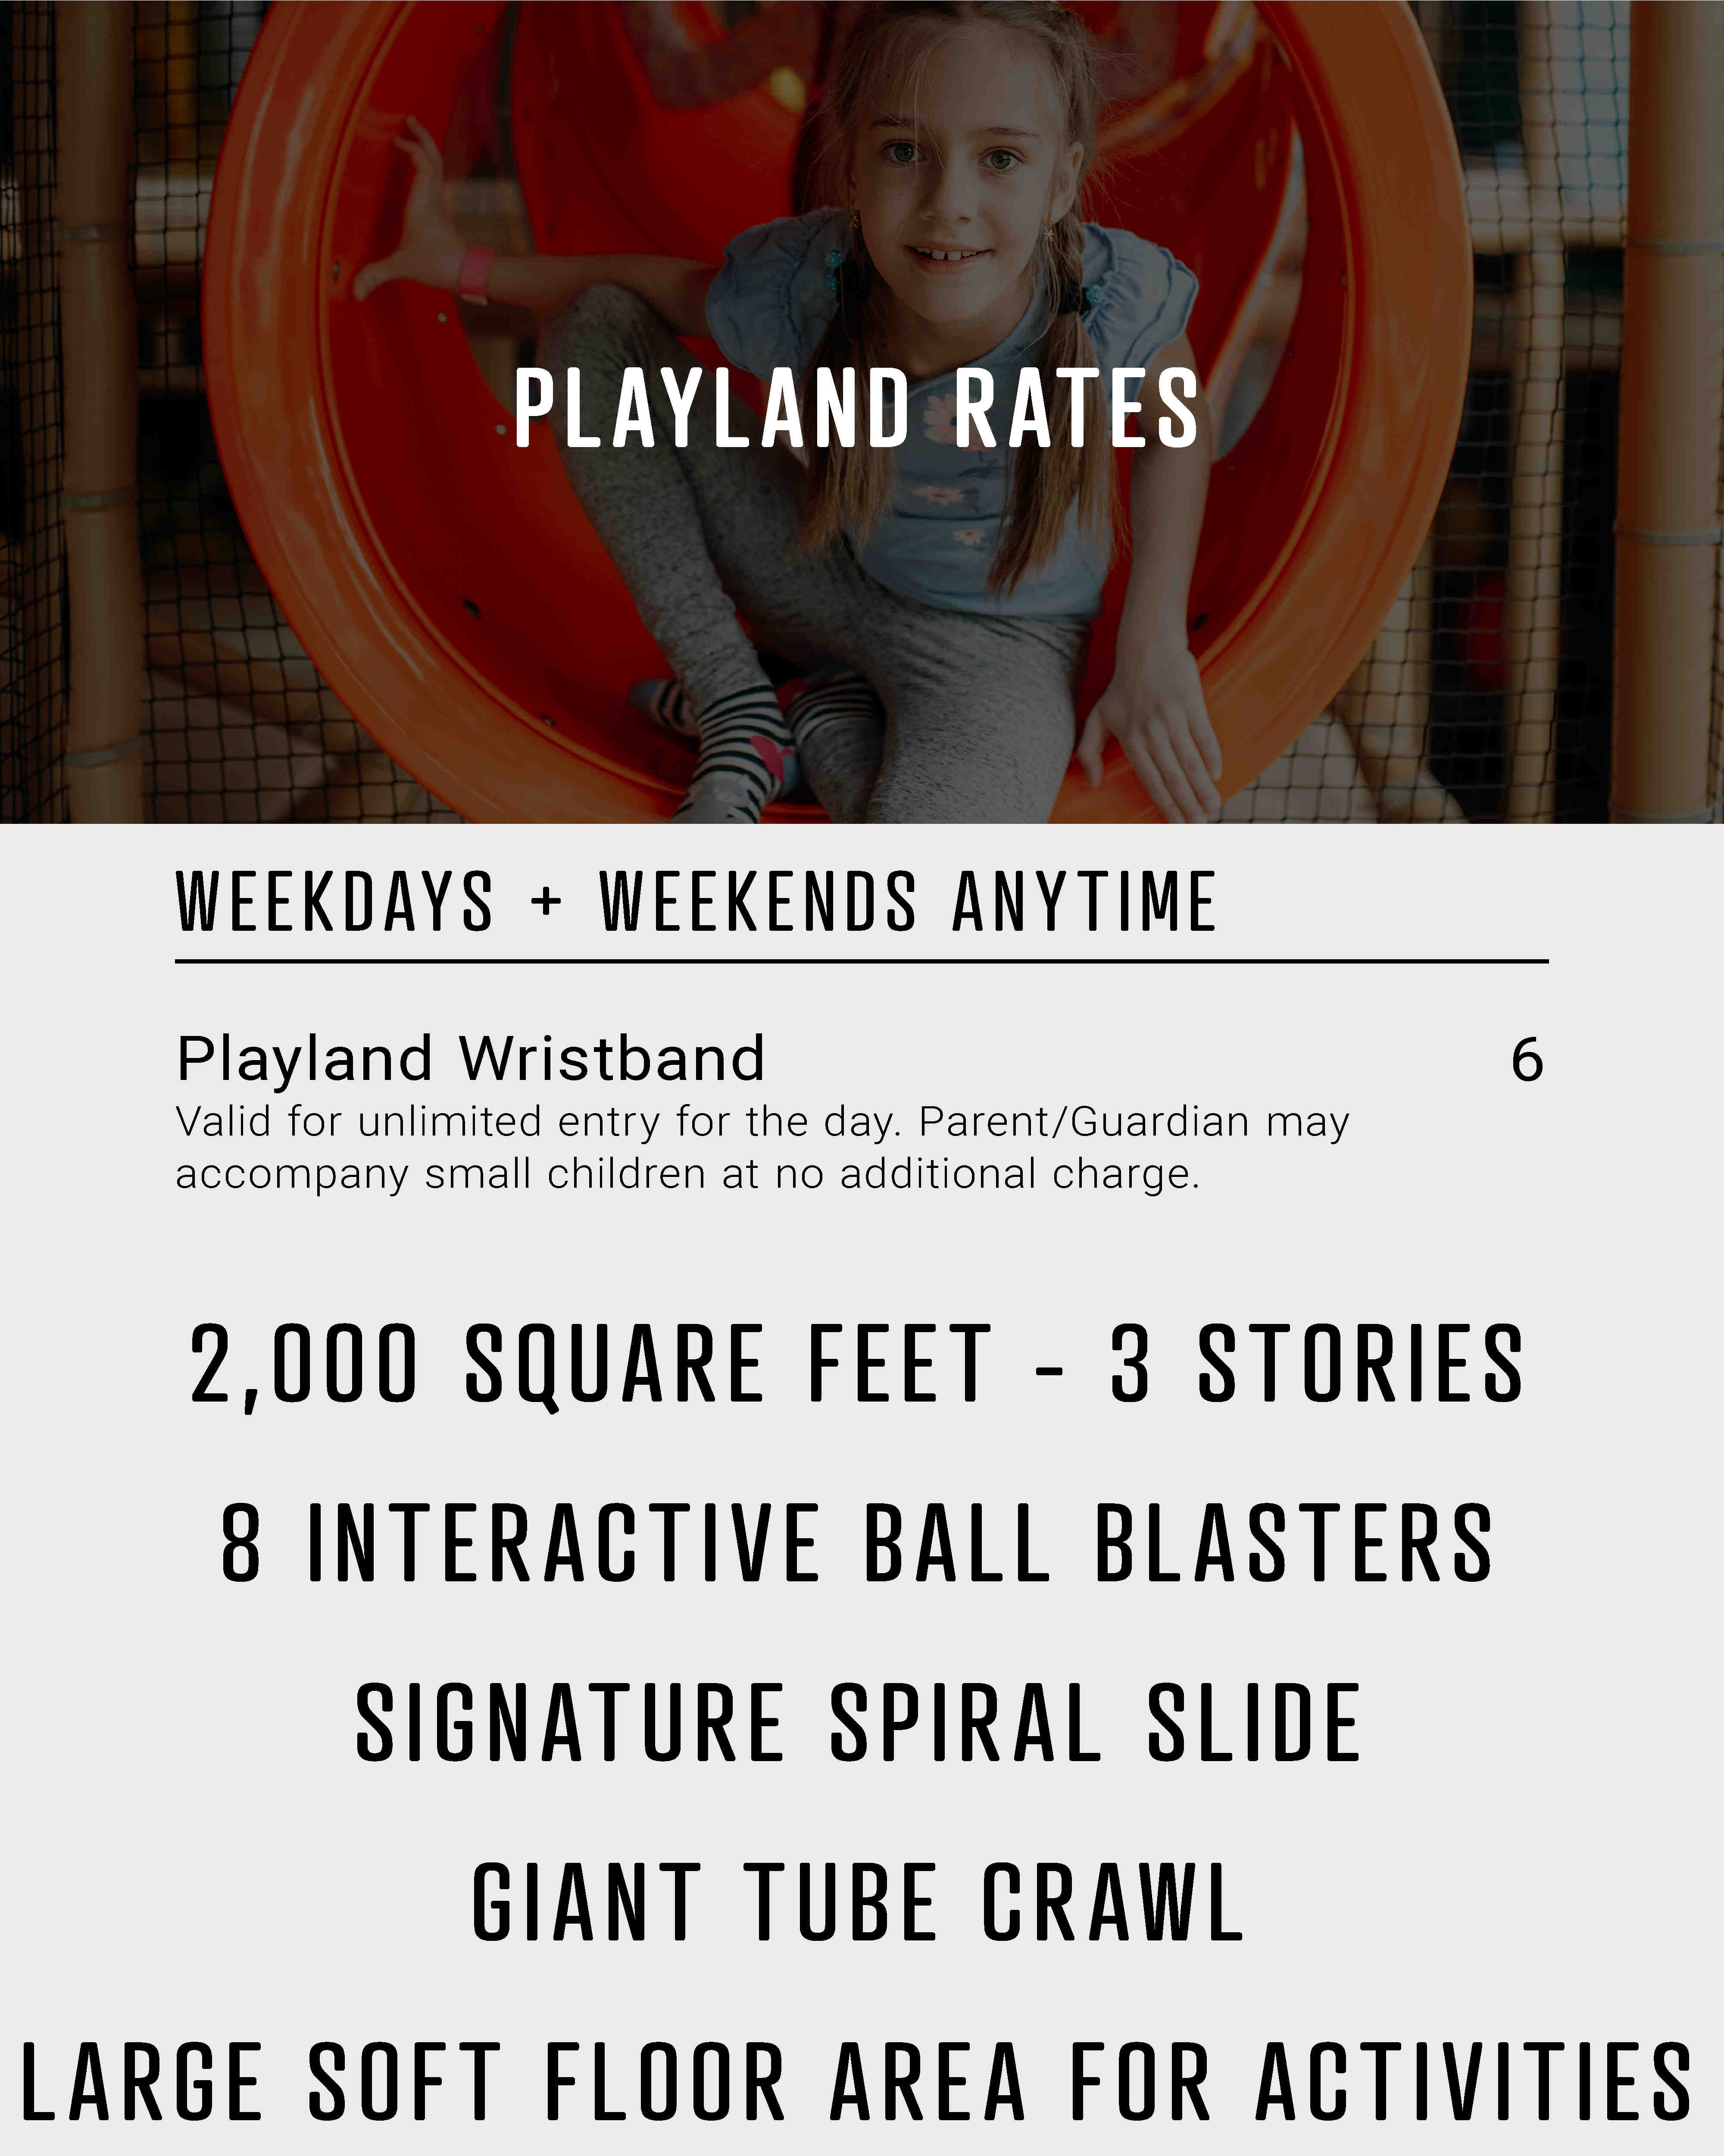 Playland rates and information